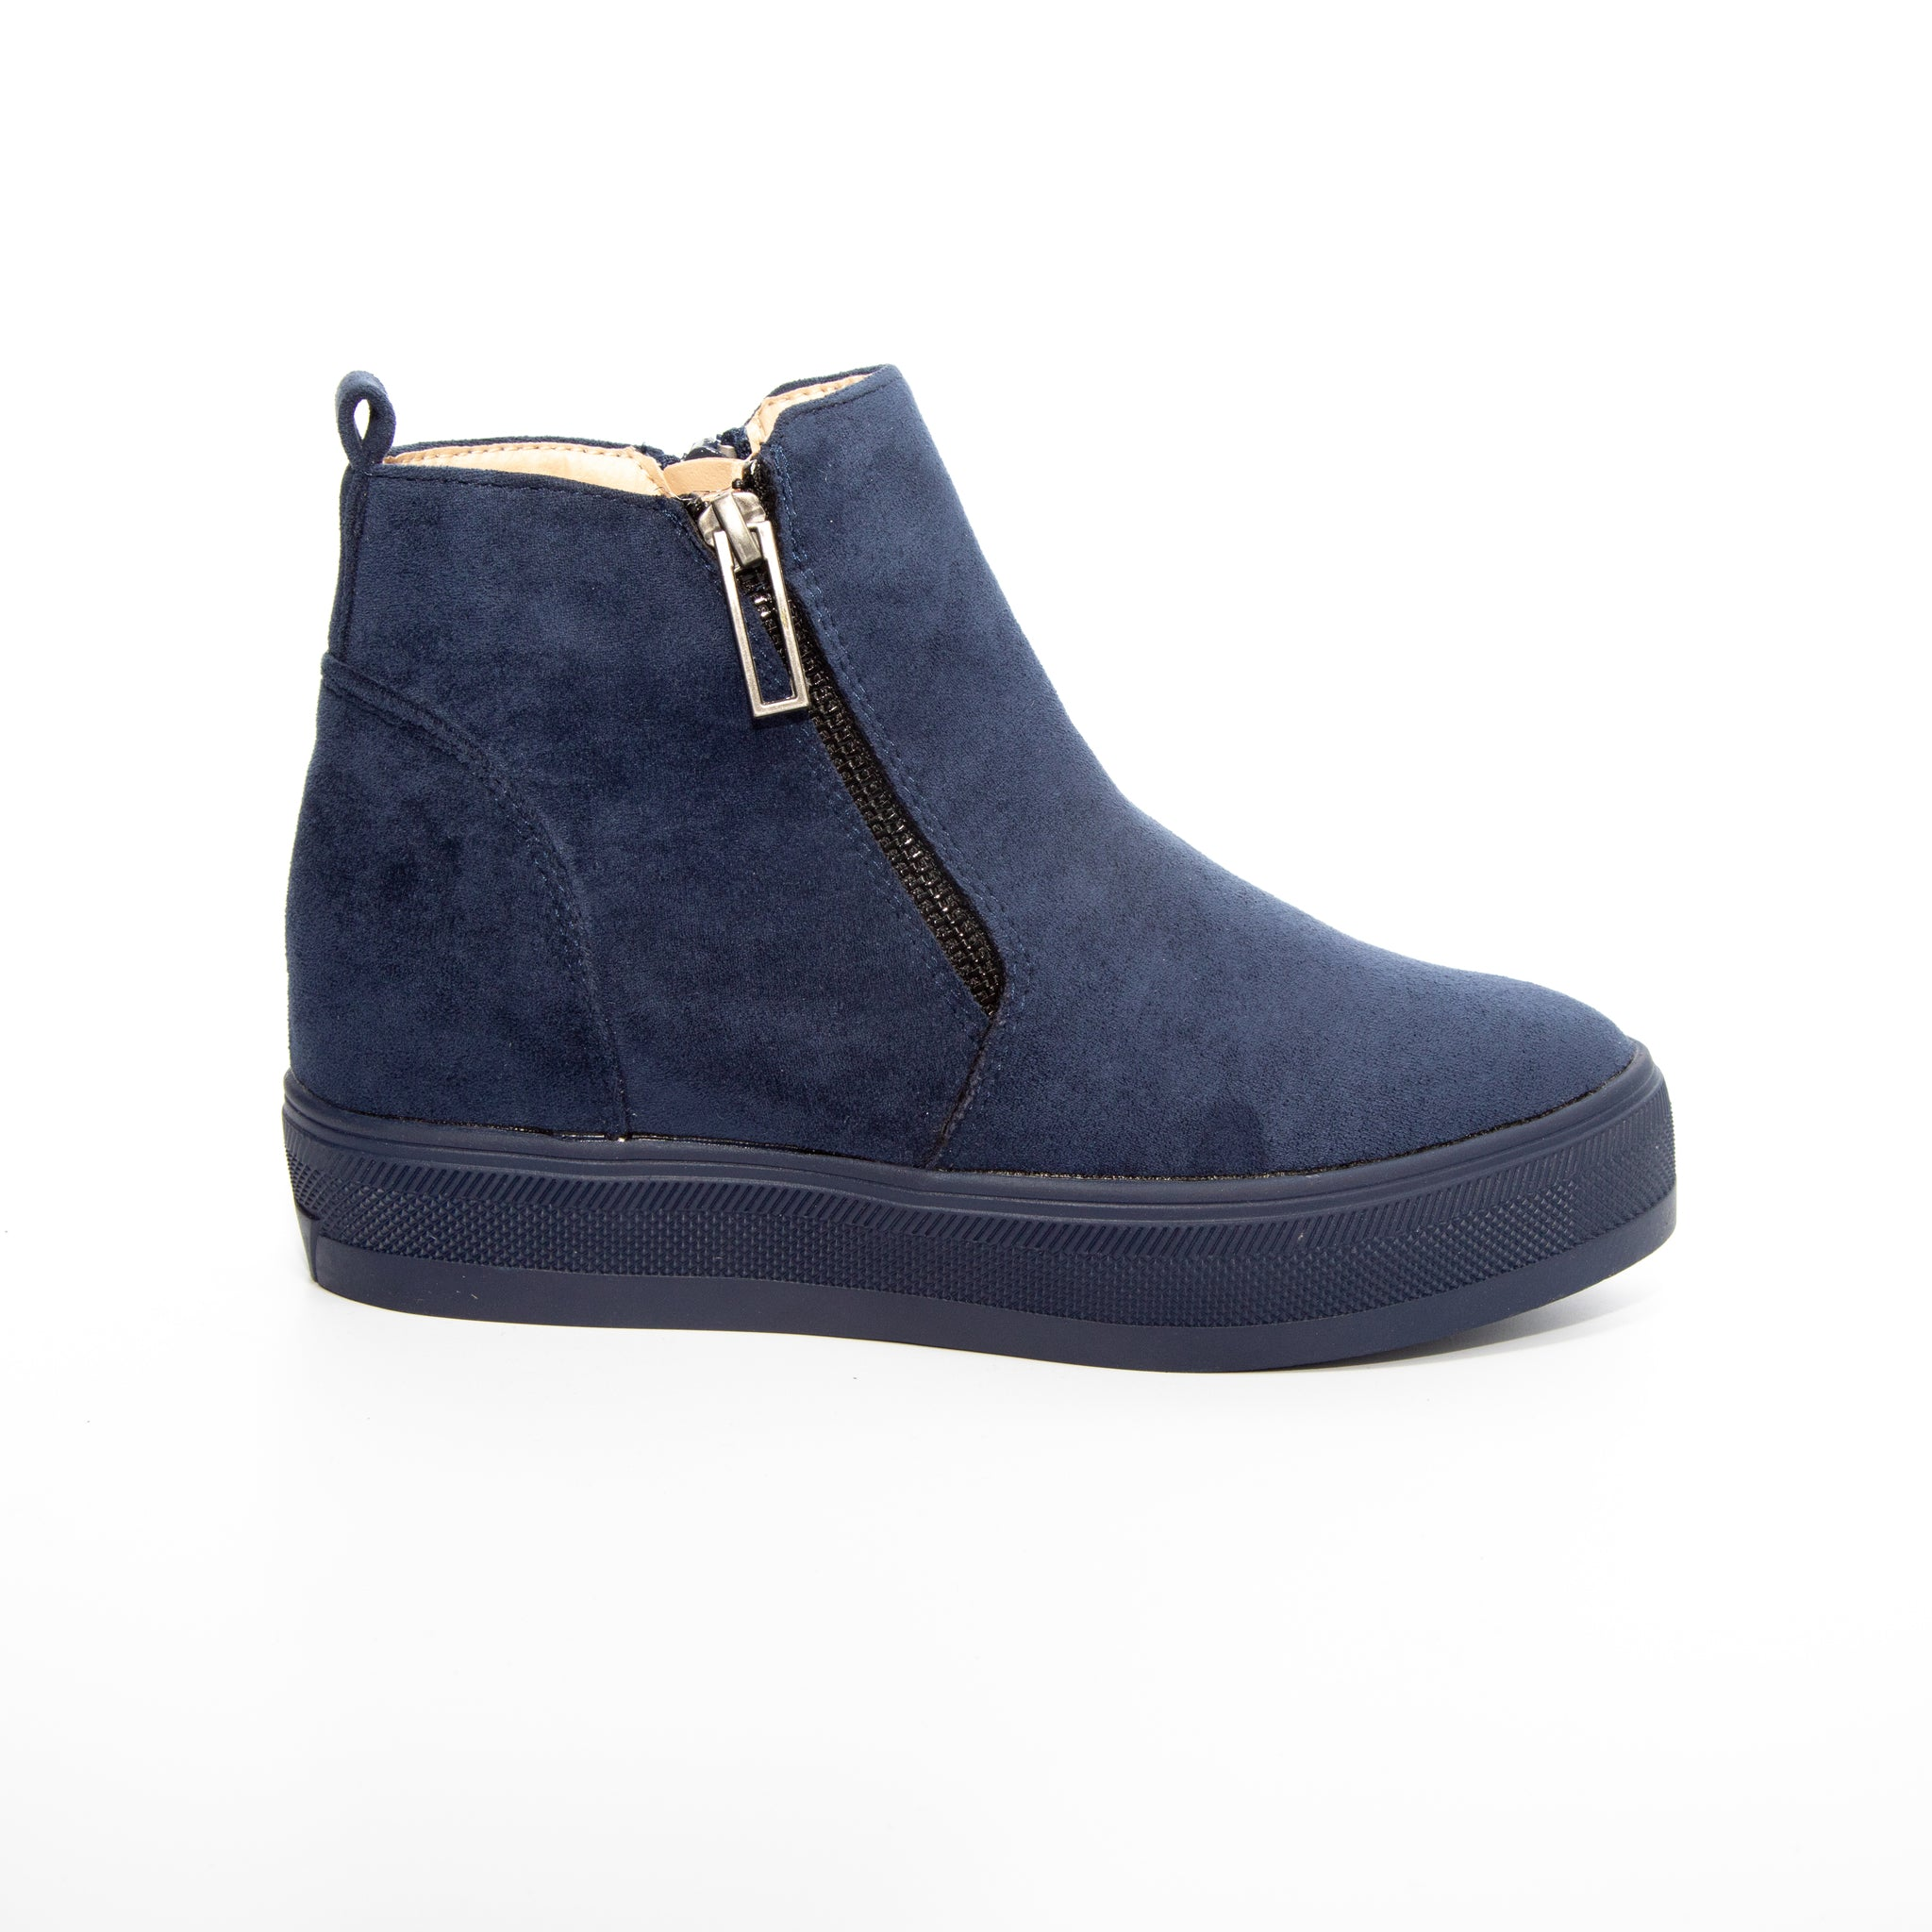 Solo by Dolce Nome | Flat Zipper Ankle Boots in Navy (side view)